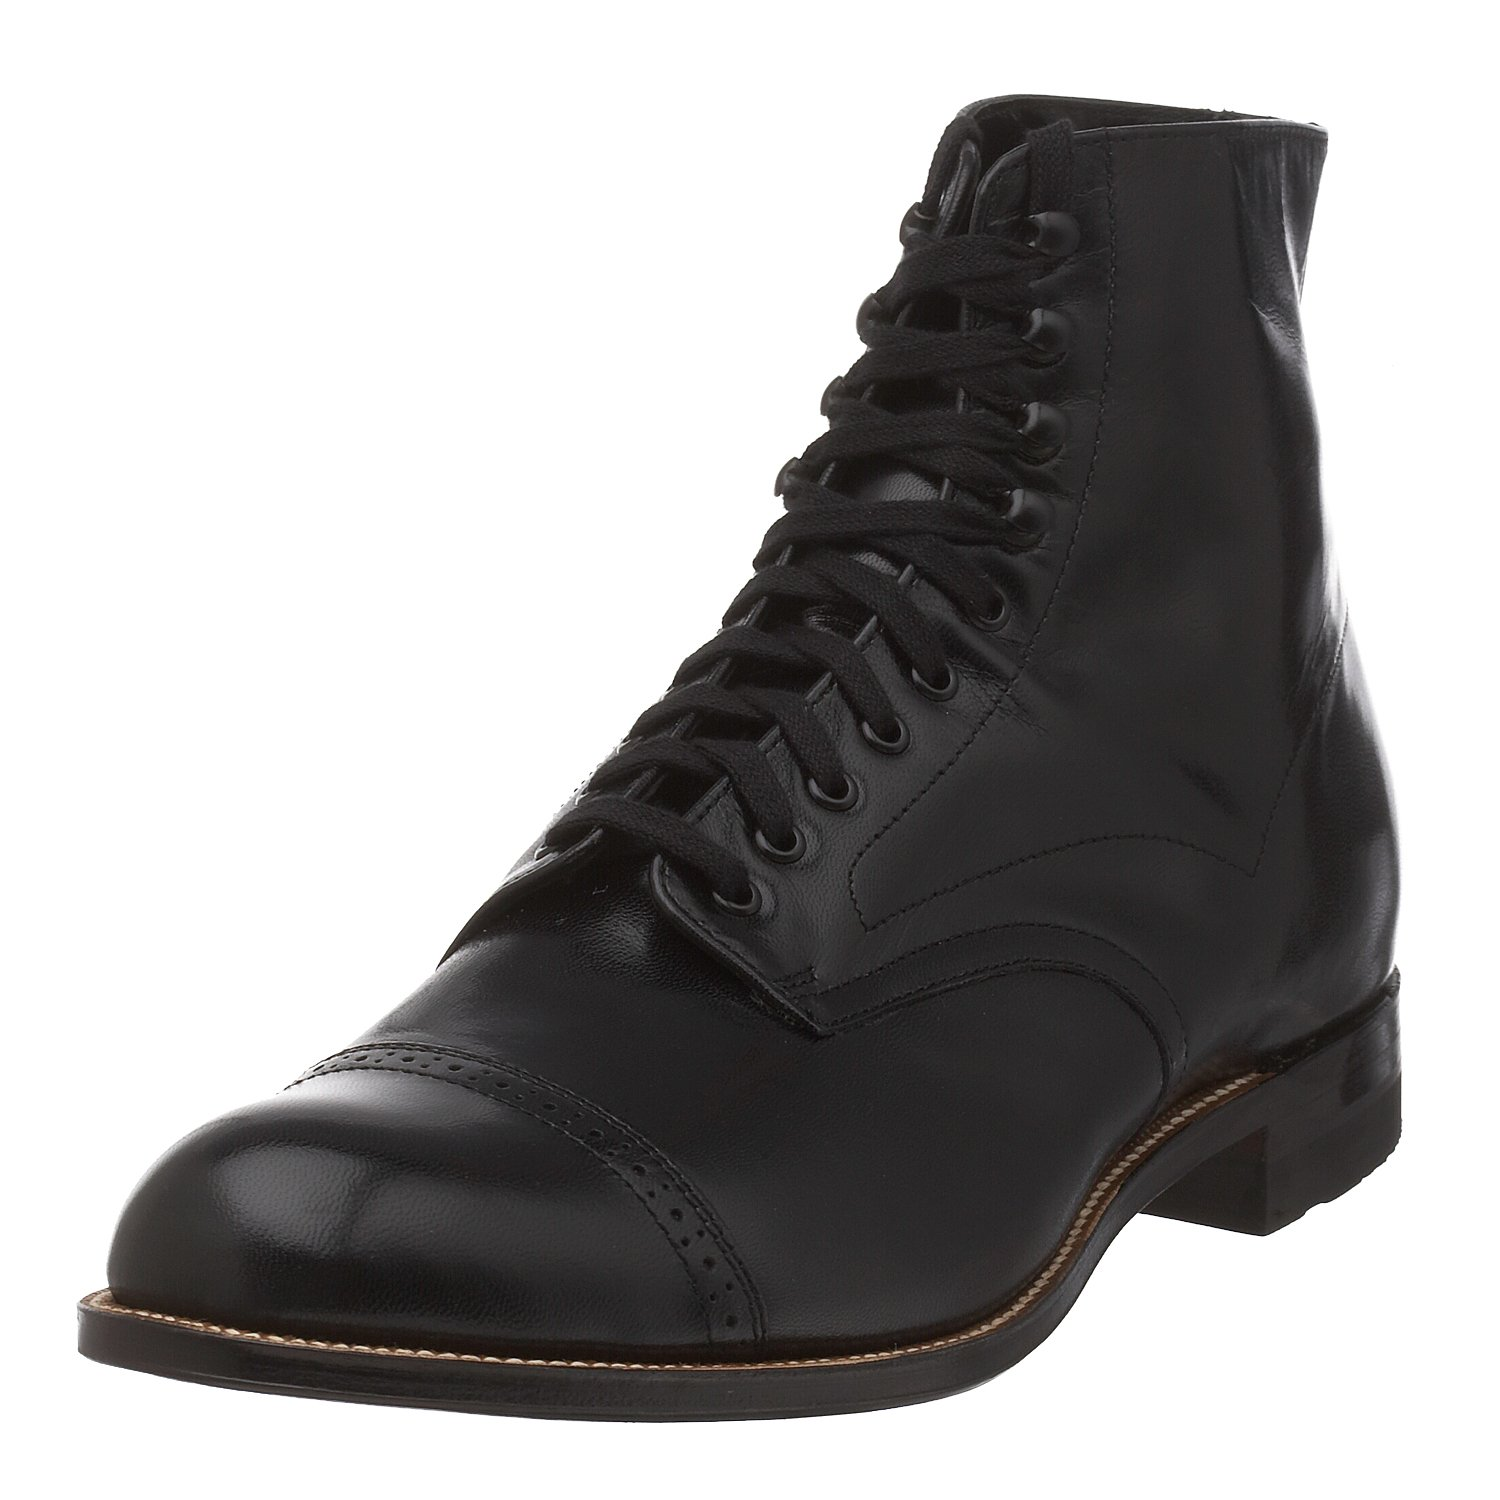 Stacy Adams   Madison Stiefel Herren Schwarz